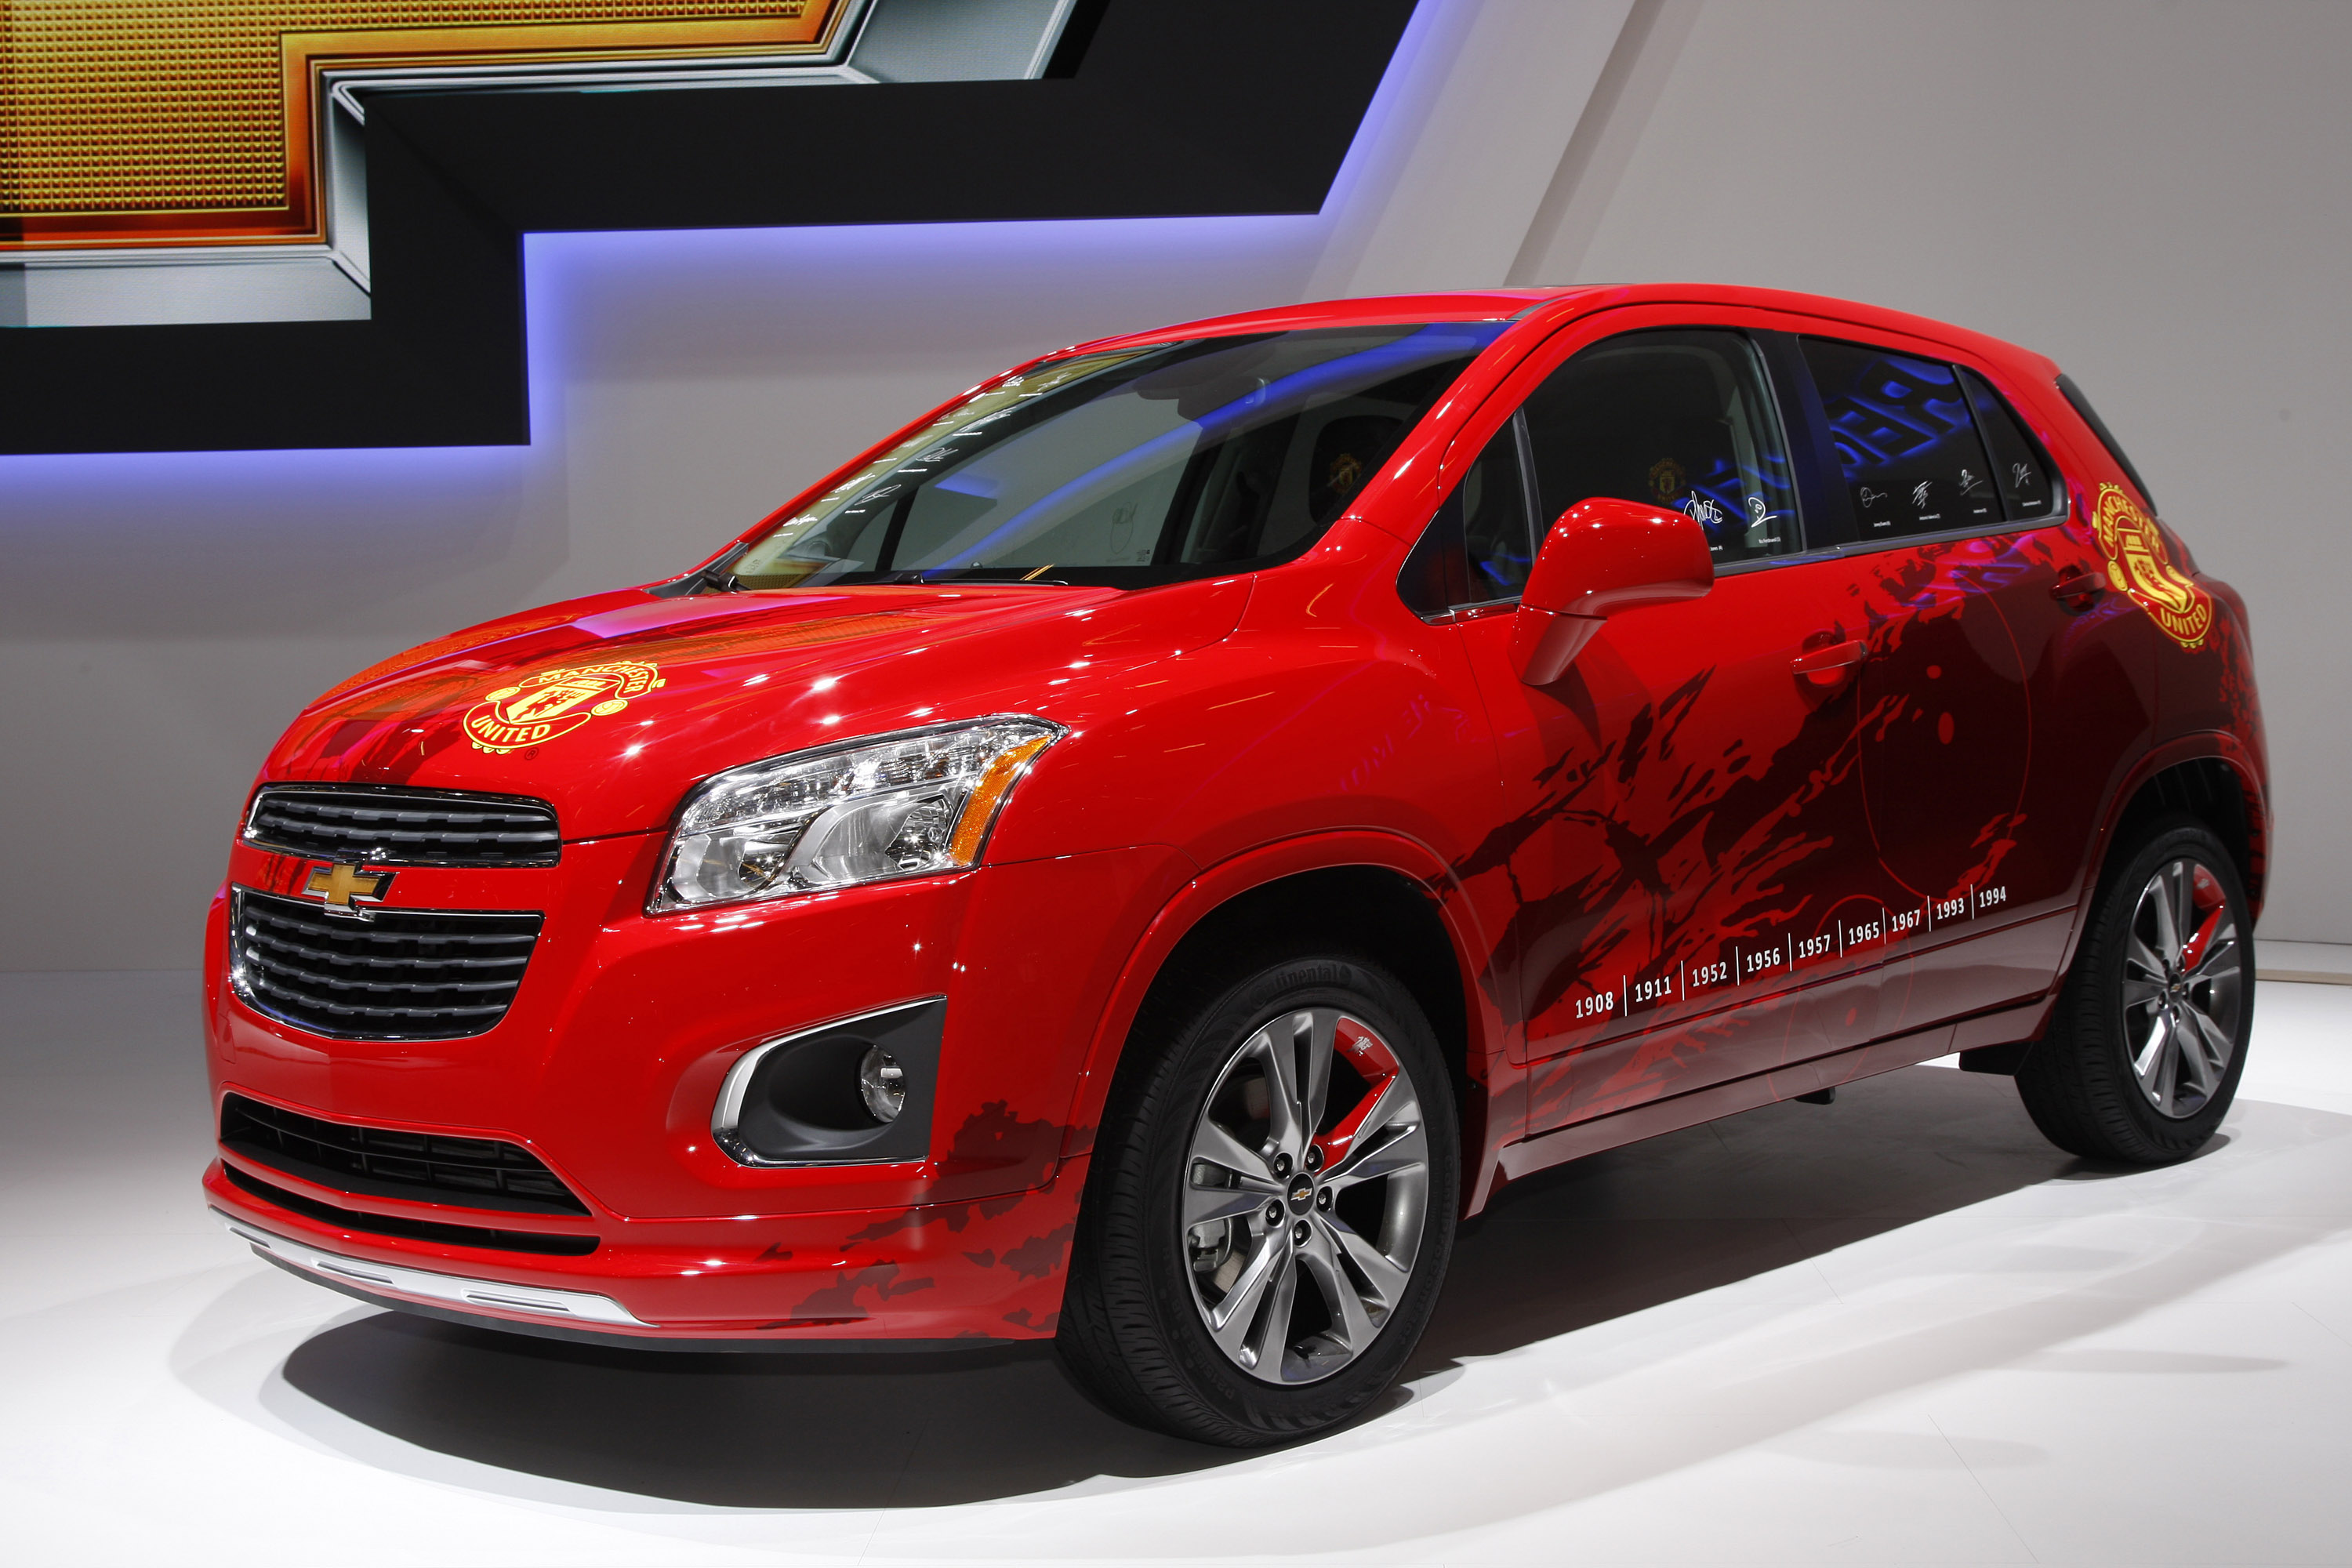 2014 Chevrolet Holden Trax Hd Pictures Carsinvasion Com